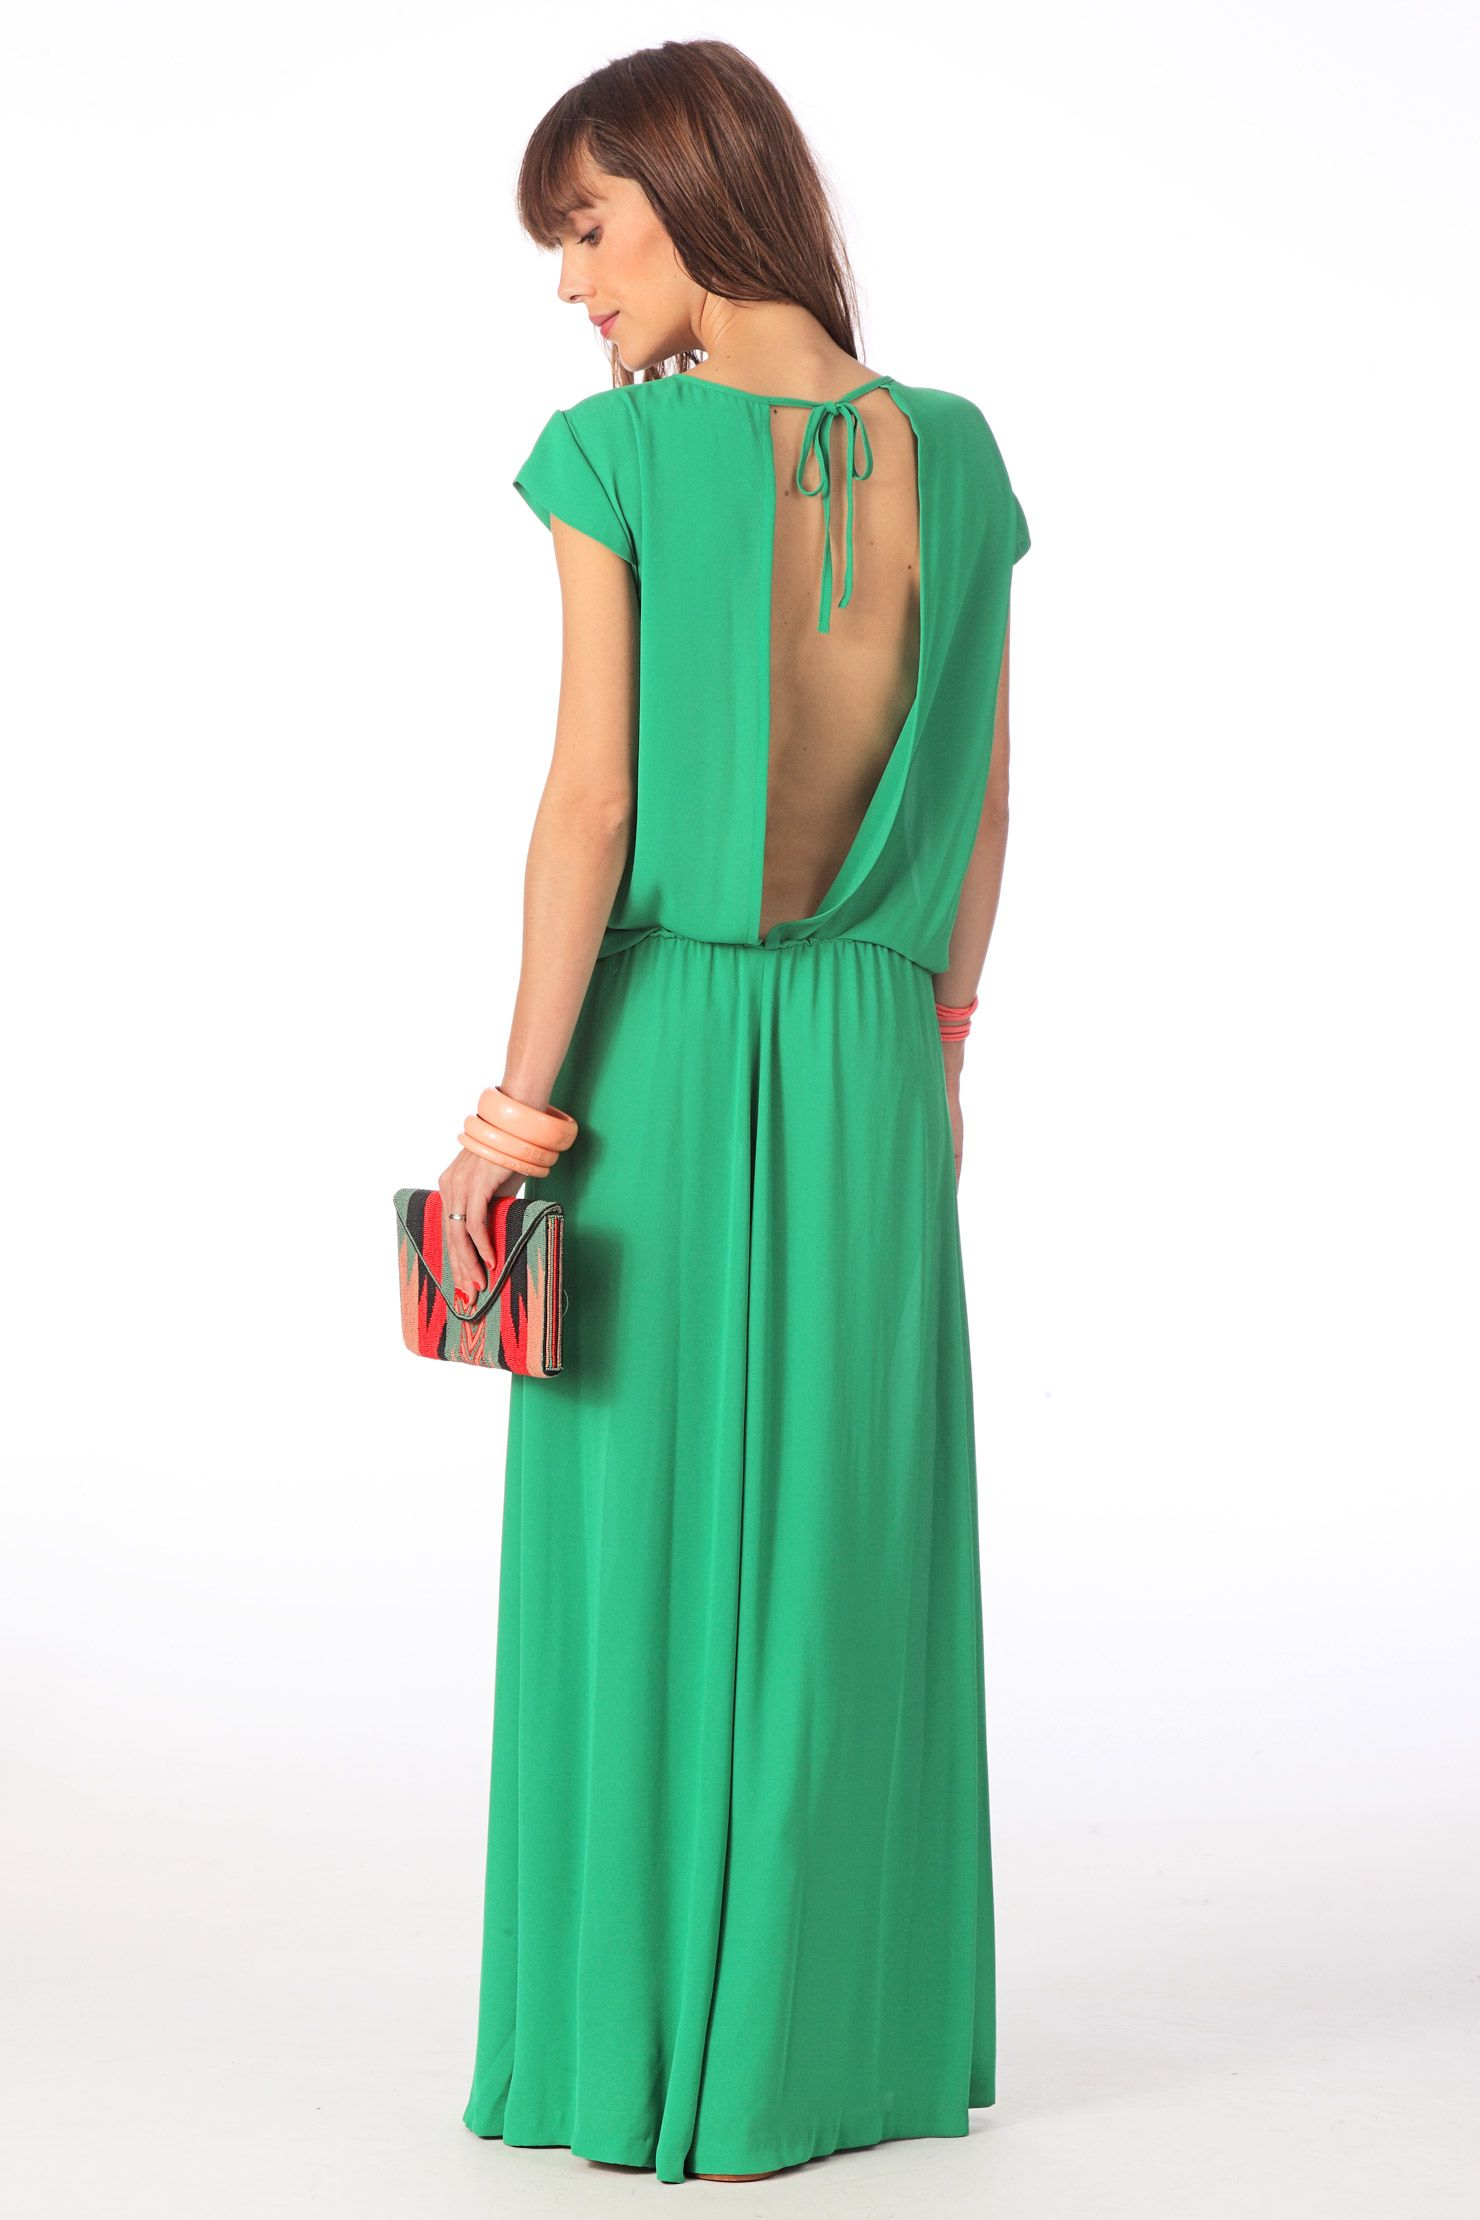 Robes elegantes france robe longue ete verte for Robe fluide verte